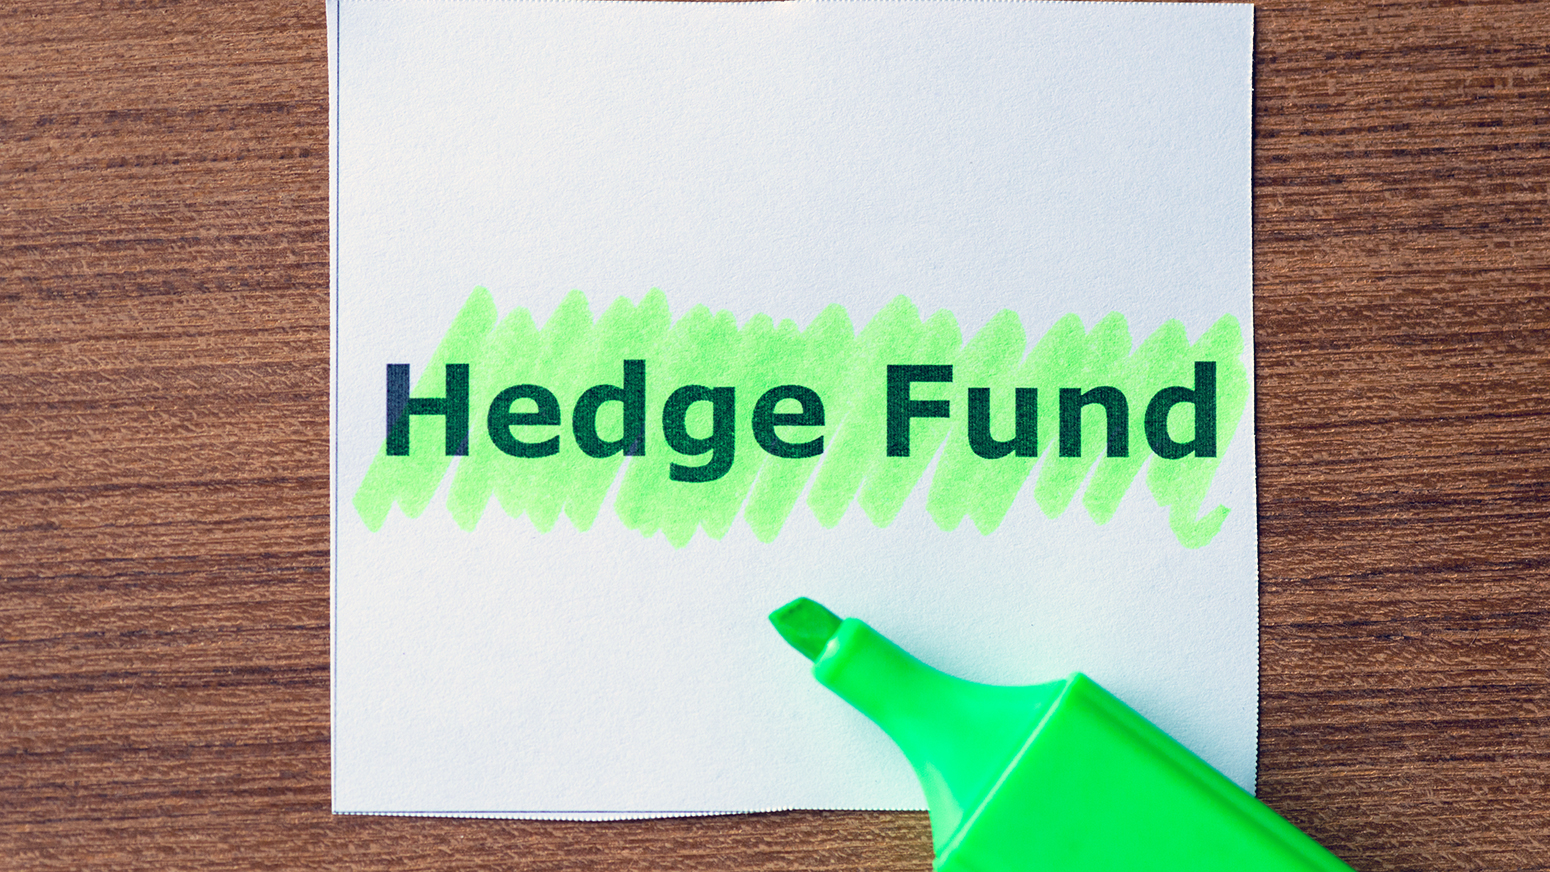 Highfields shutting down $12 1 billion hedge fund